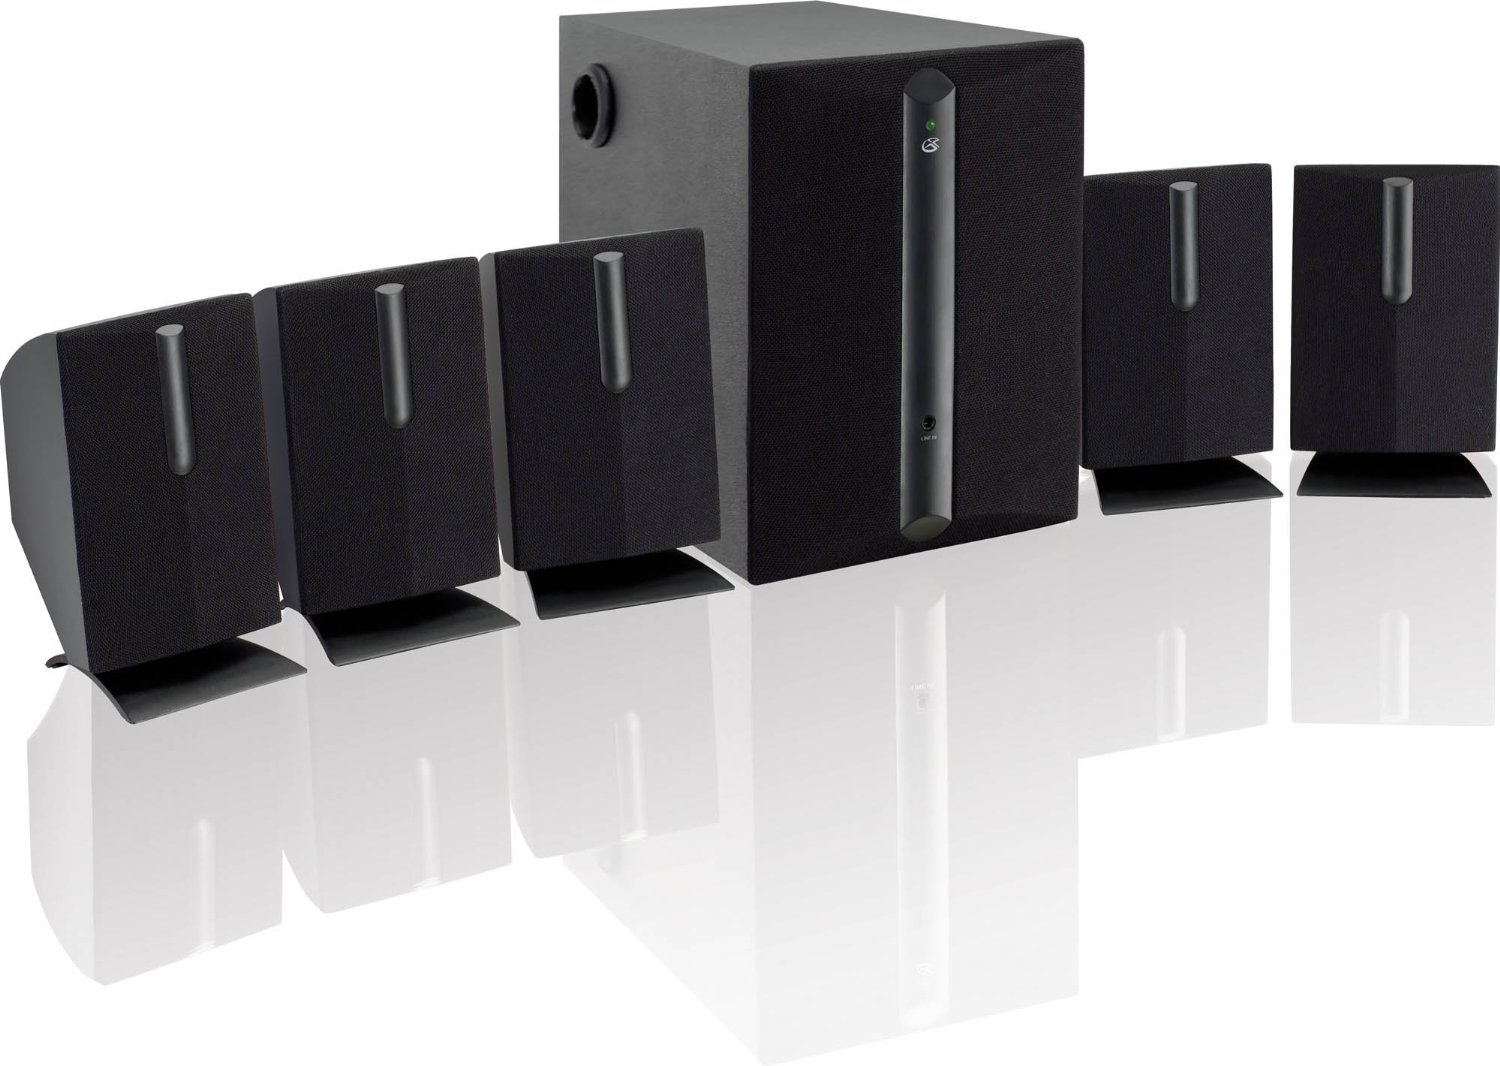 subwoofer surround sound speakers 5 1 ch home theater. Black Bedroom Furniture Sets. Home Design Ideas